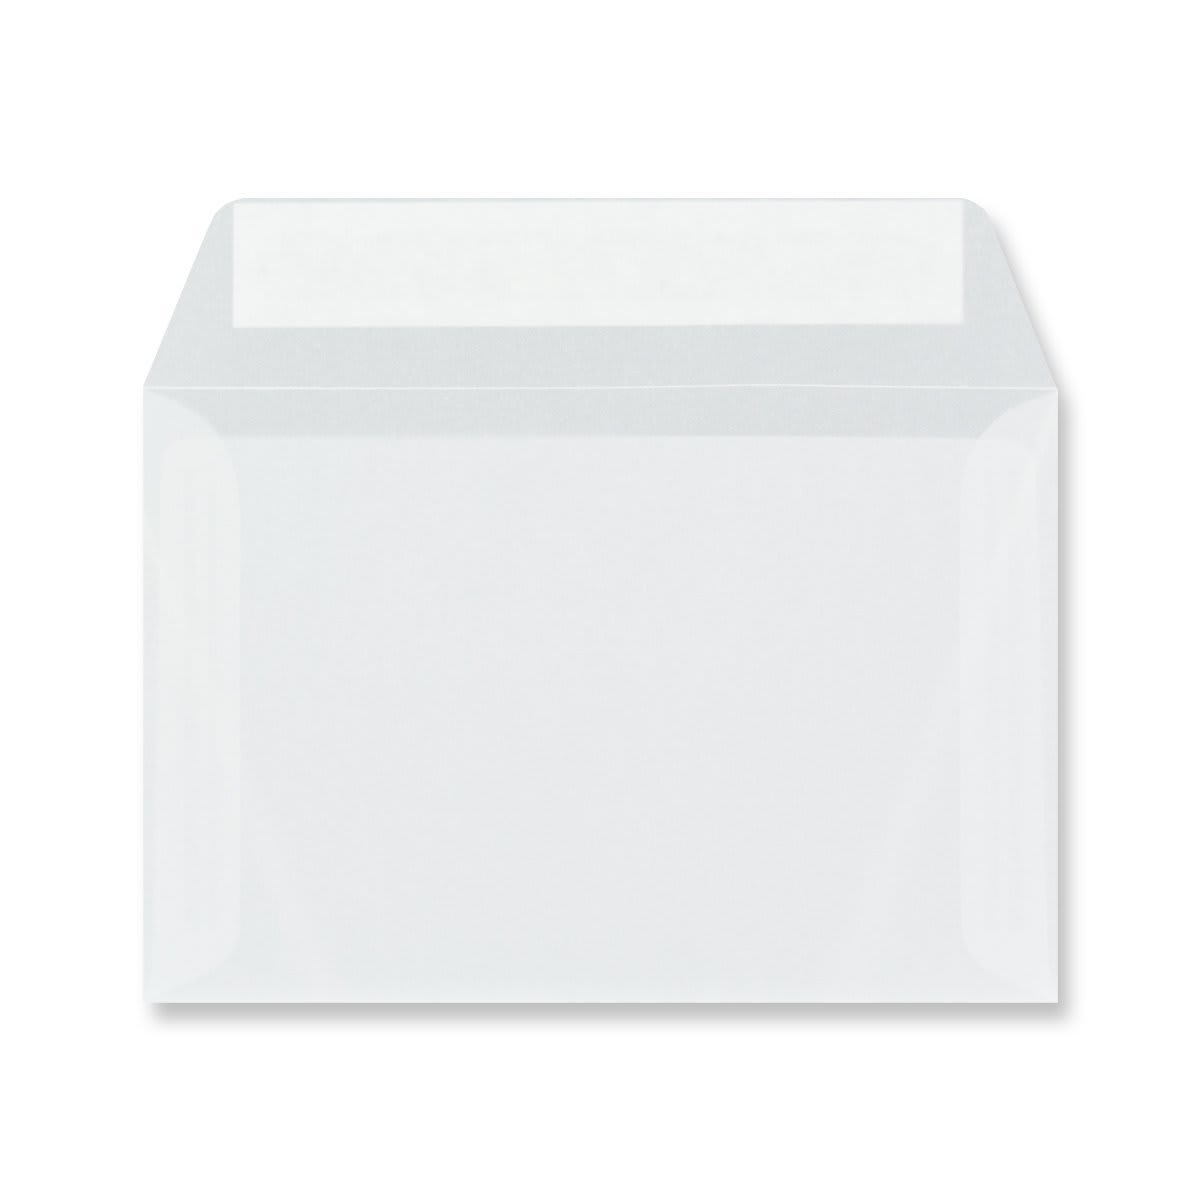 C6 CLEAR TRANSLUCENT ENVELOPES